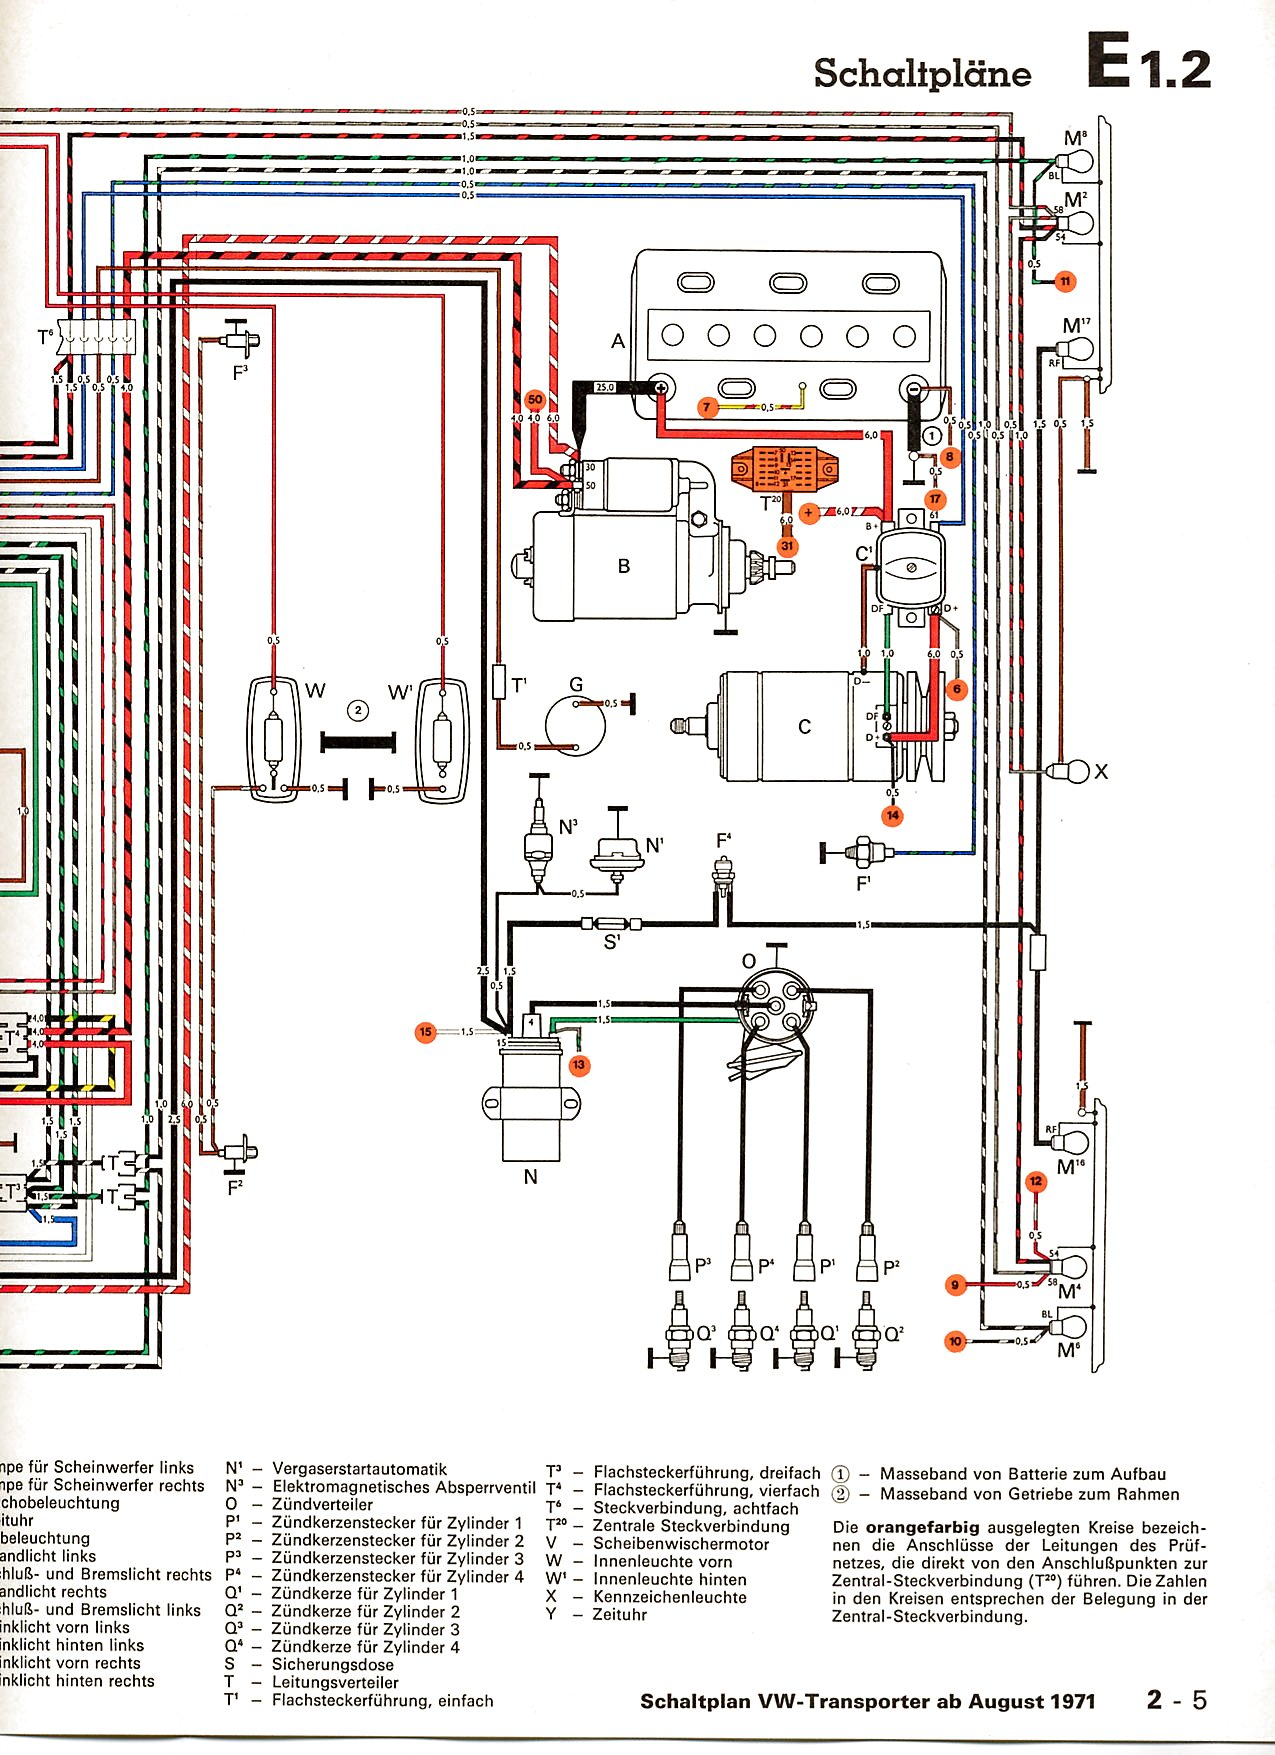 Transporter_from_August_1971 2 vw wiring diagrams Electrical Wiring Diagrams at eliteediting.co